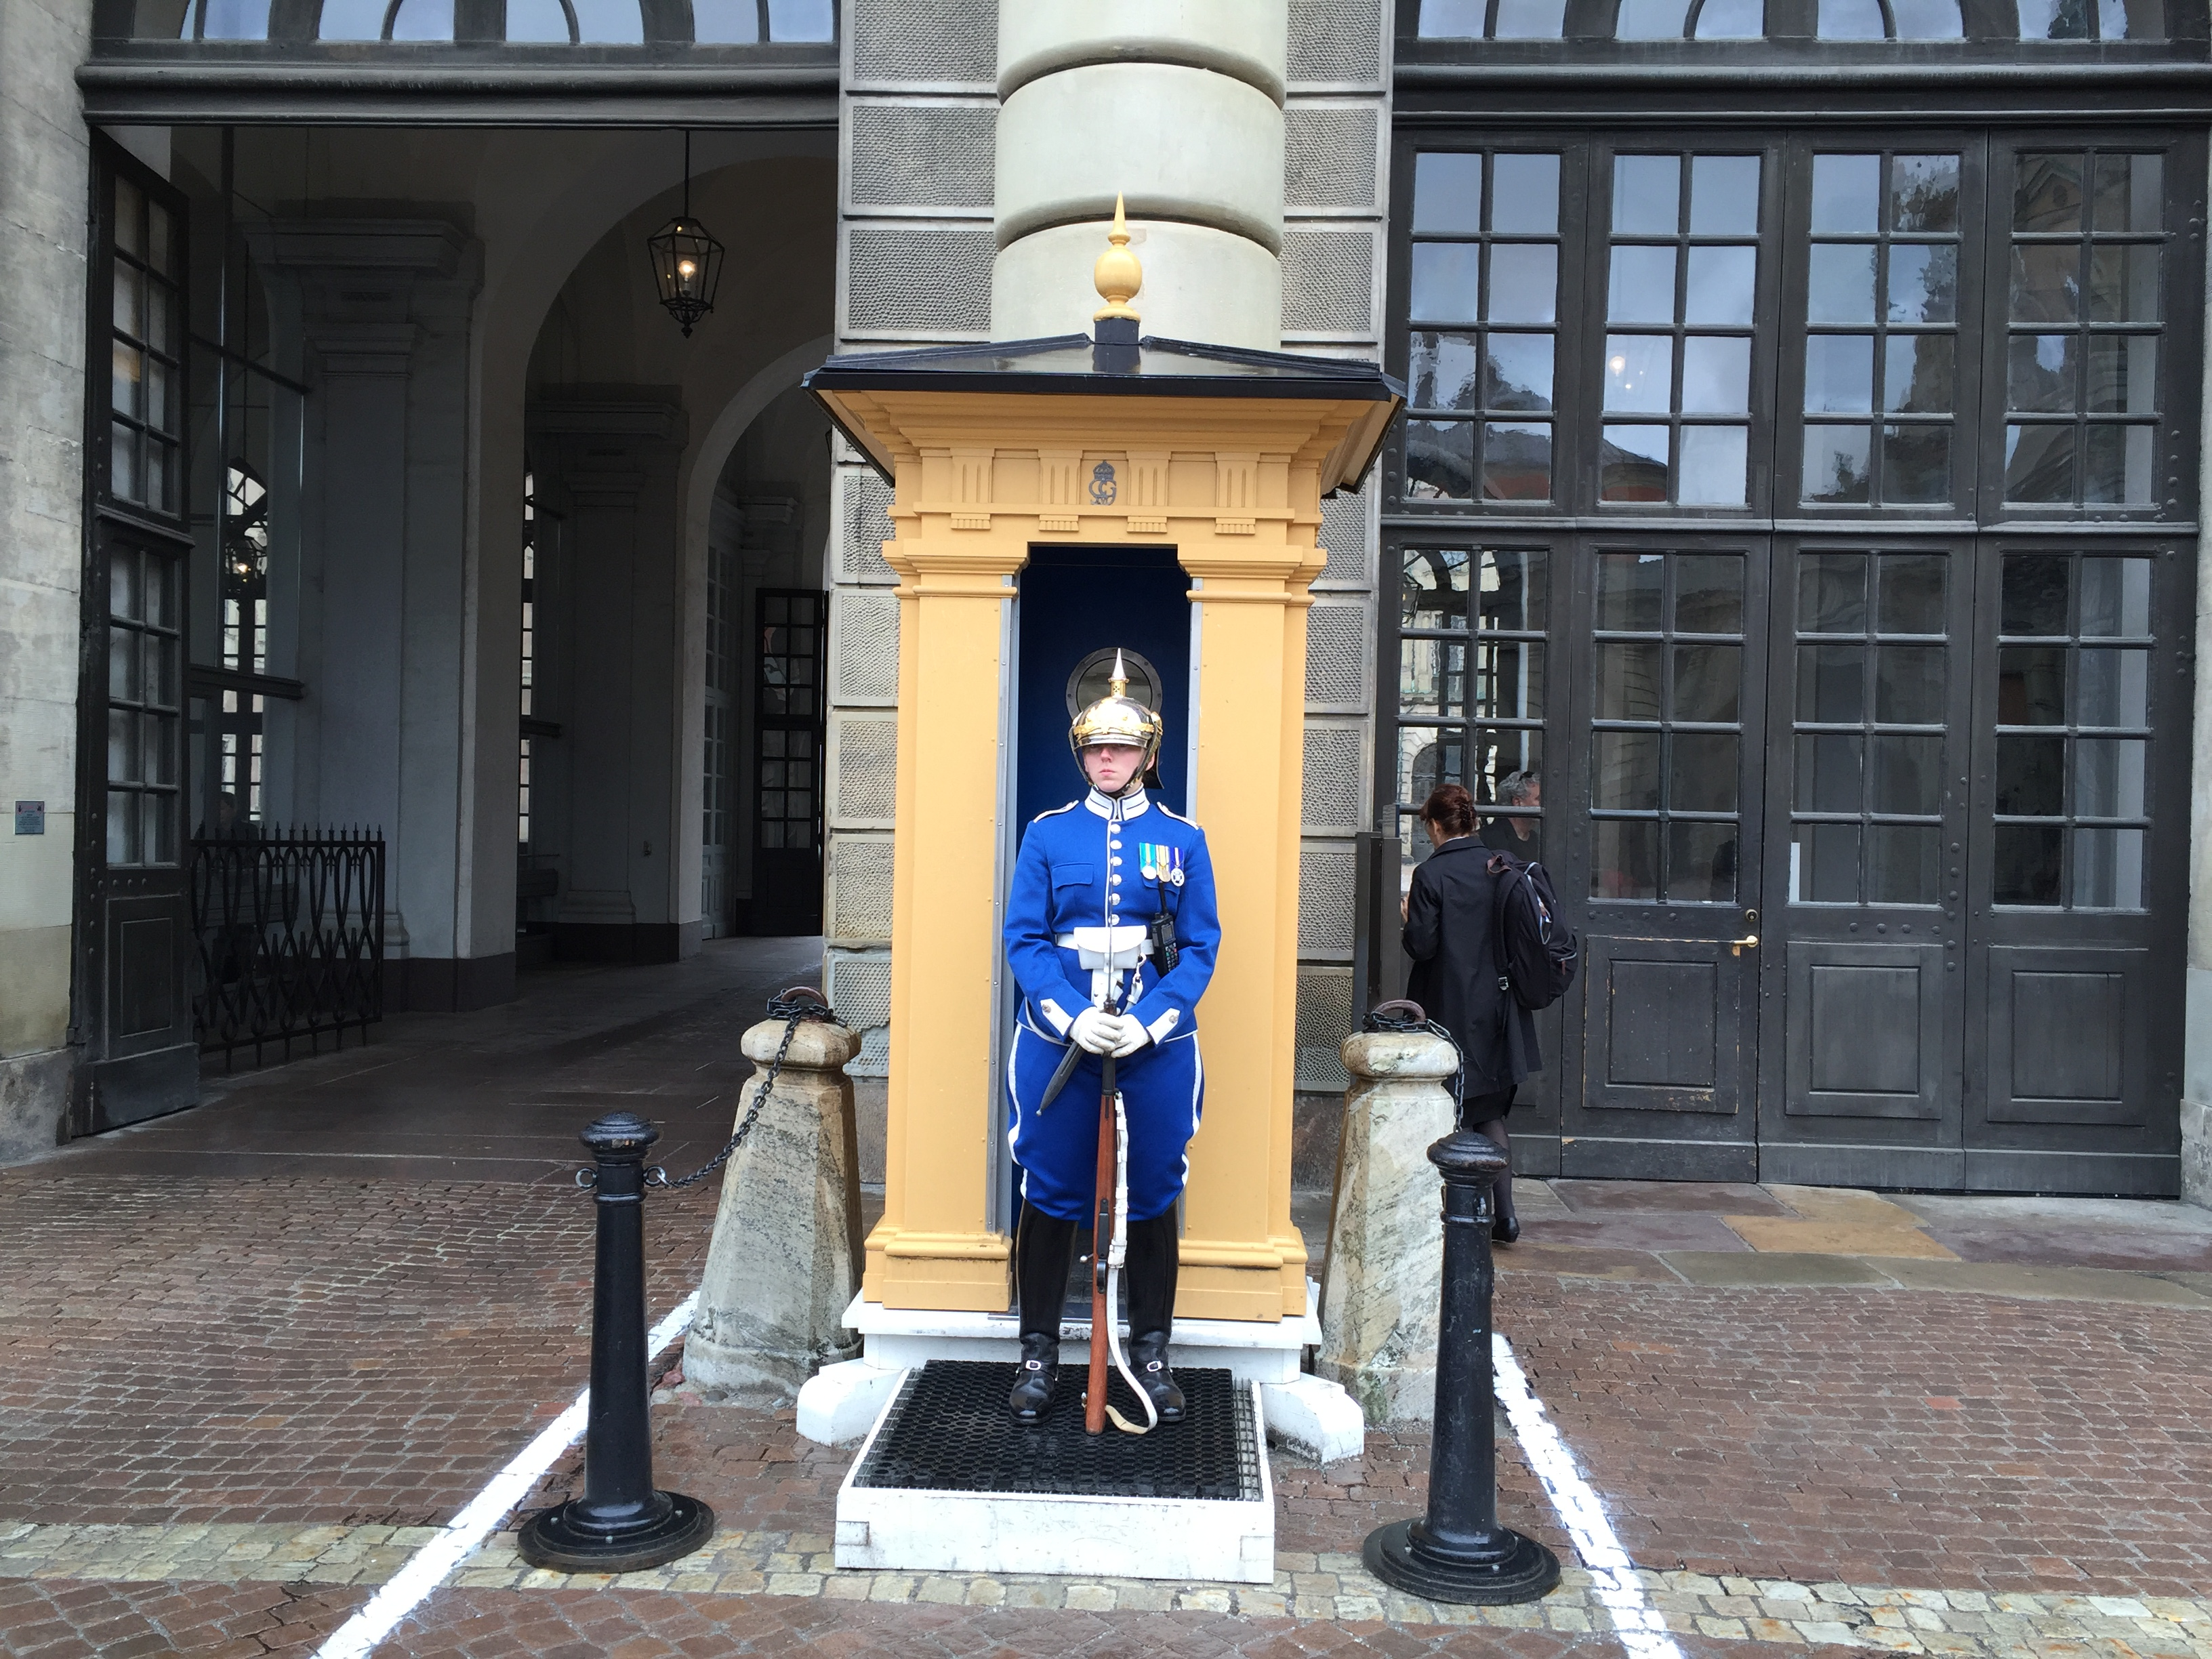 A guard at the palace. I elected not to test his stoicism.